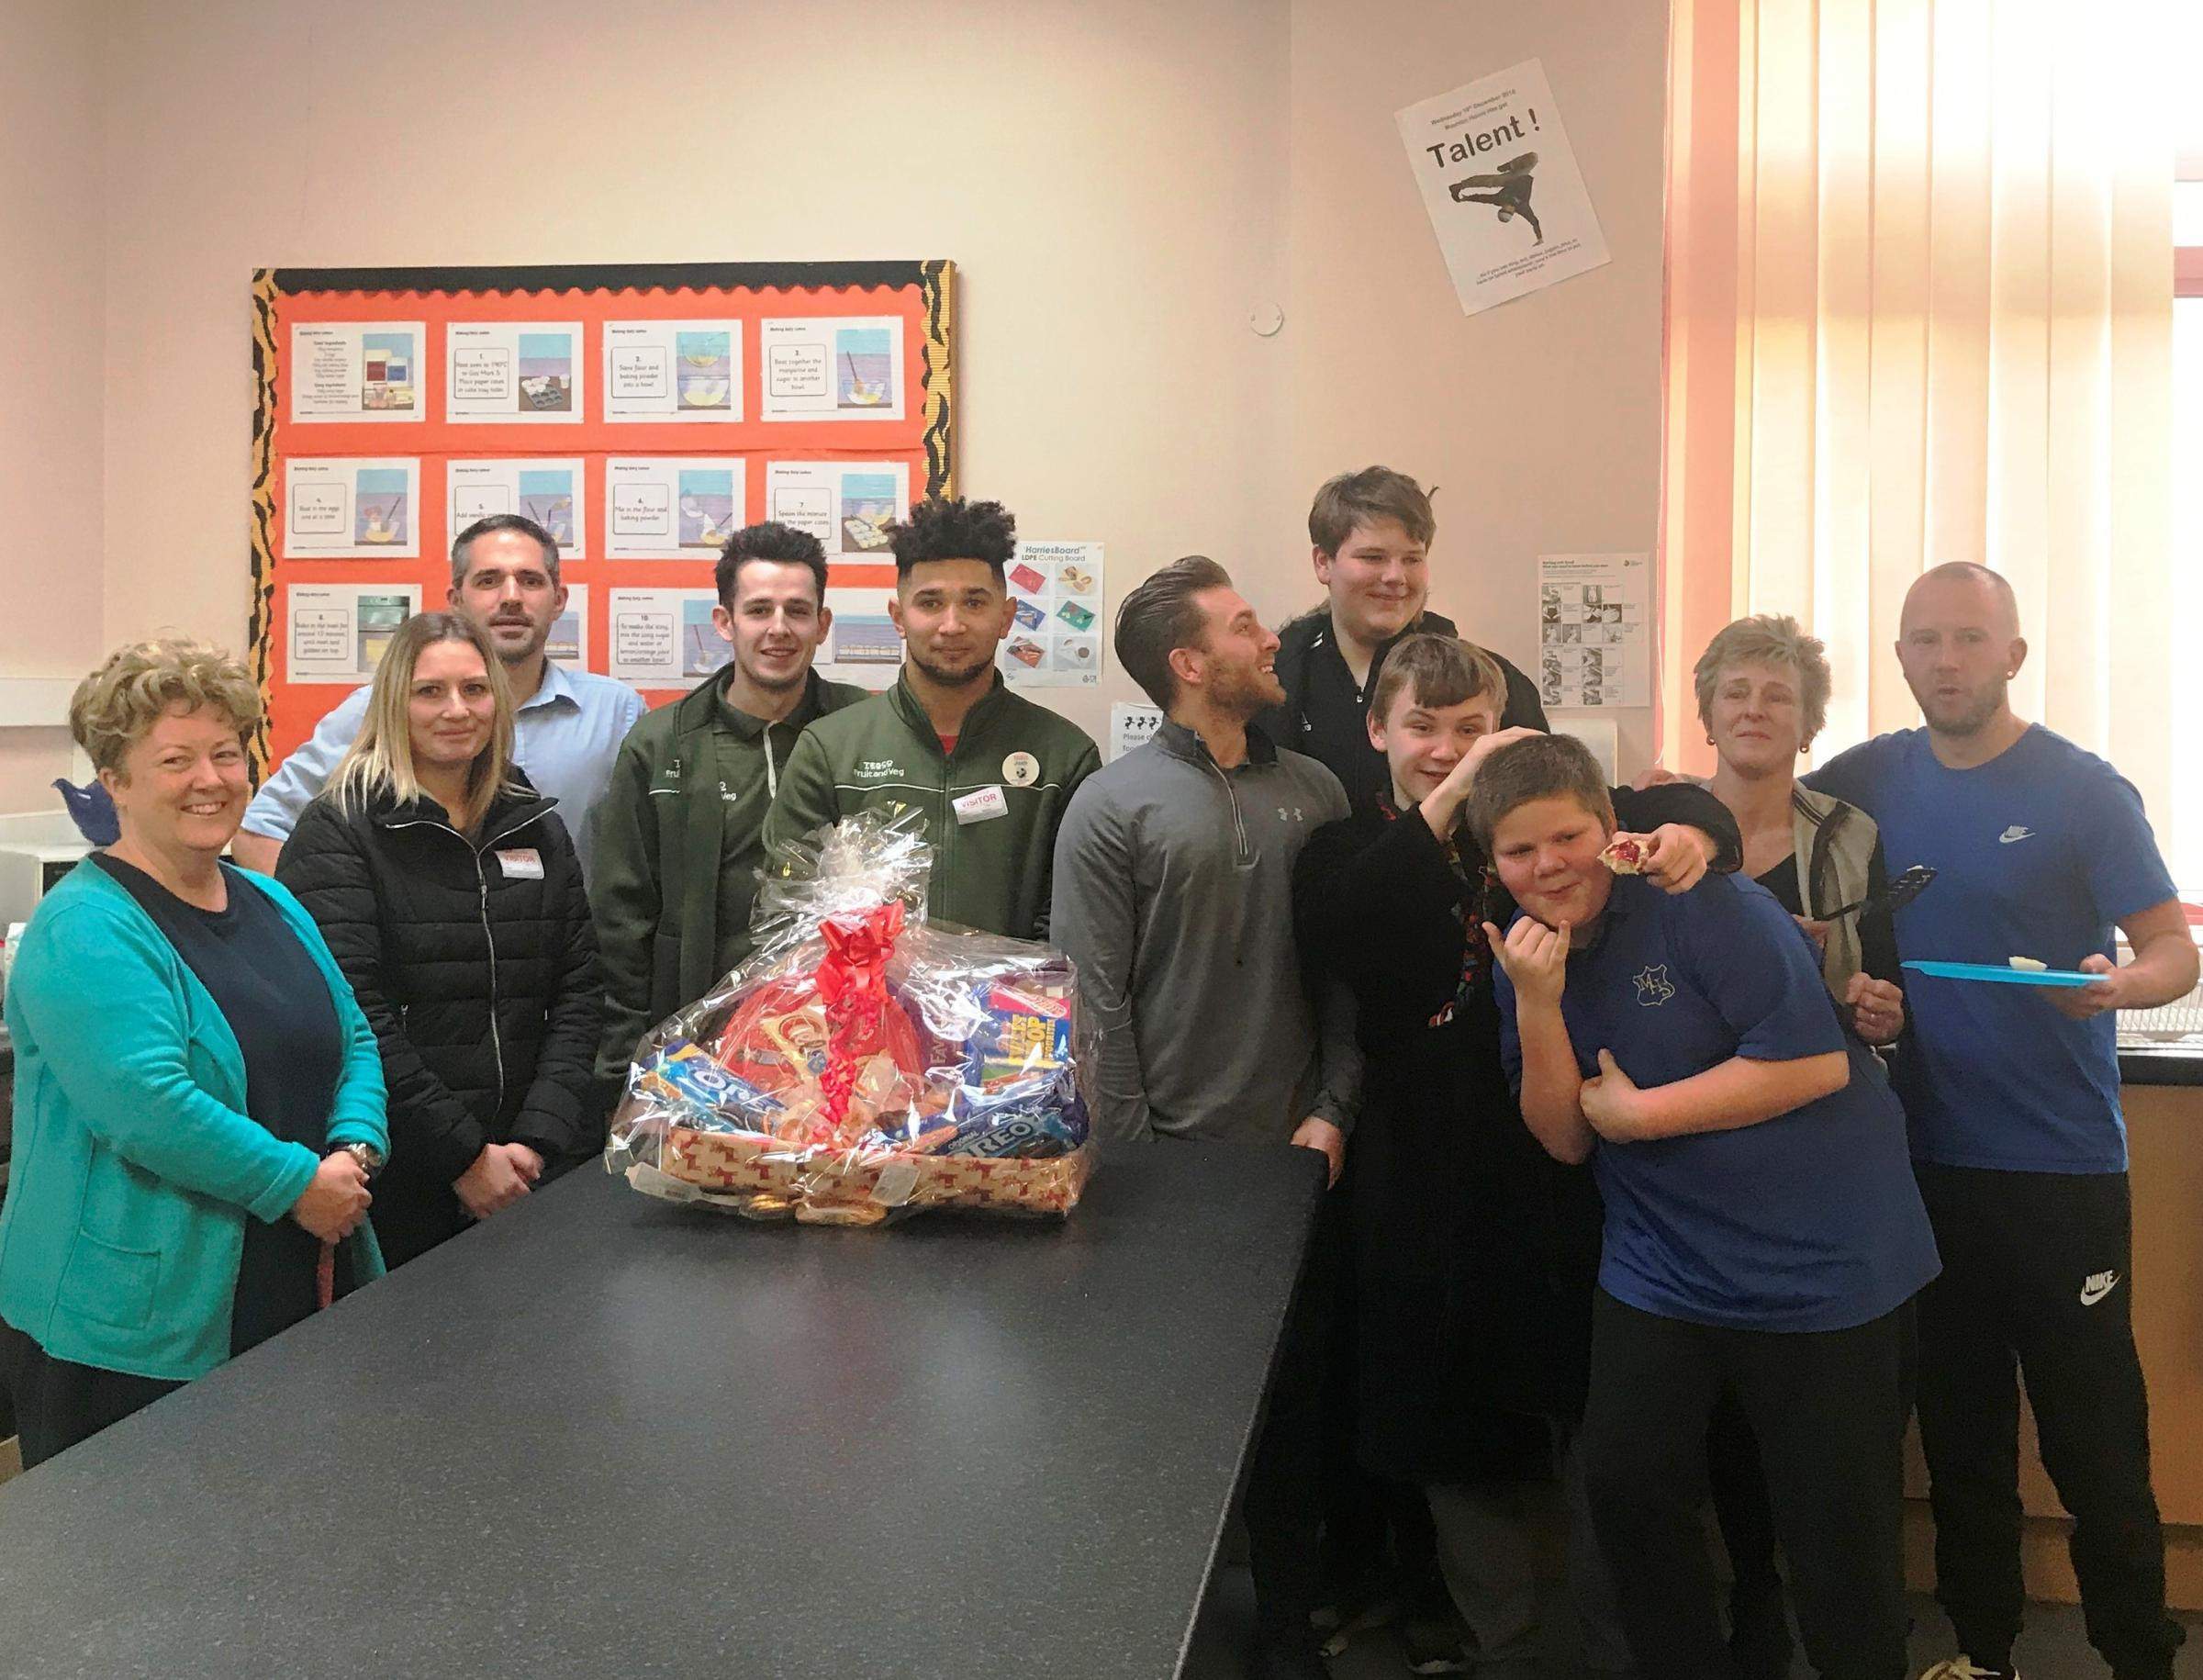 Headteacher Beverley Randall (left) with representatives from Tesco's Chepstow store as well as staff and pupils of Mounton House School.